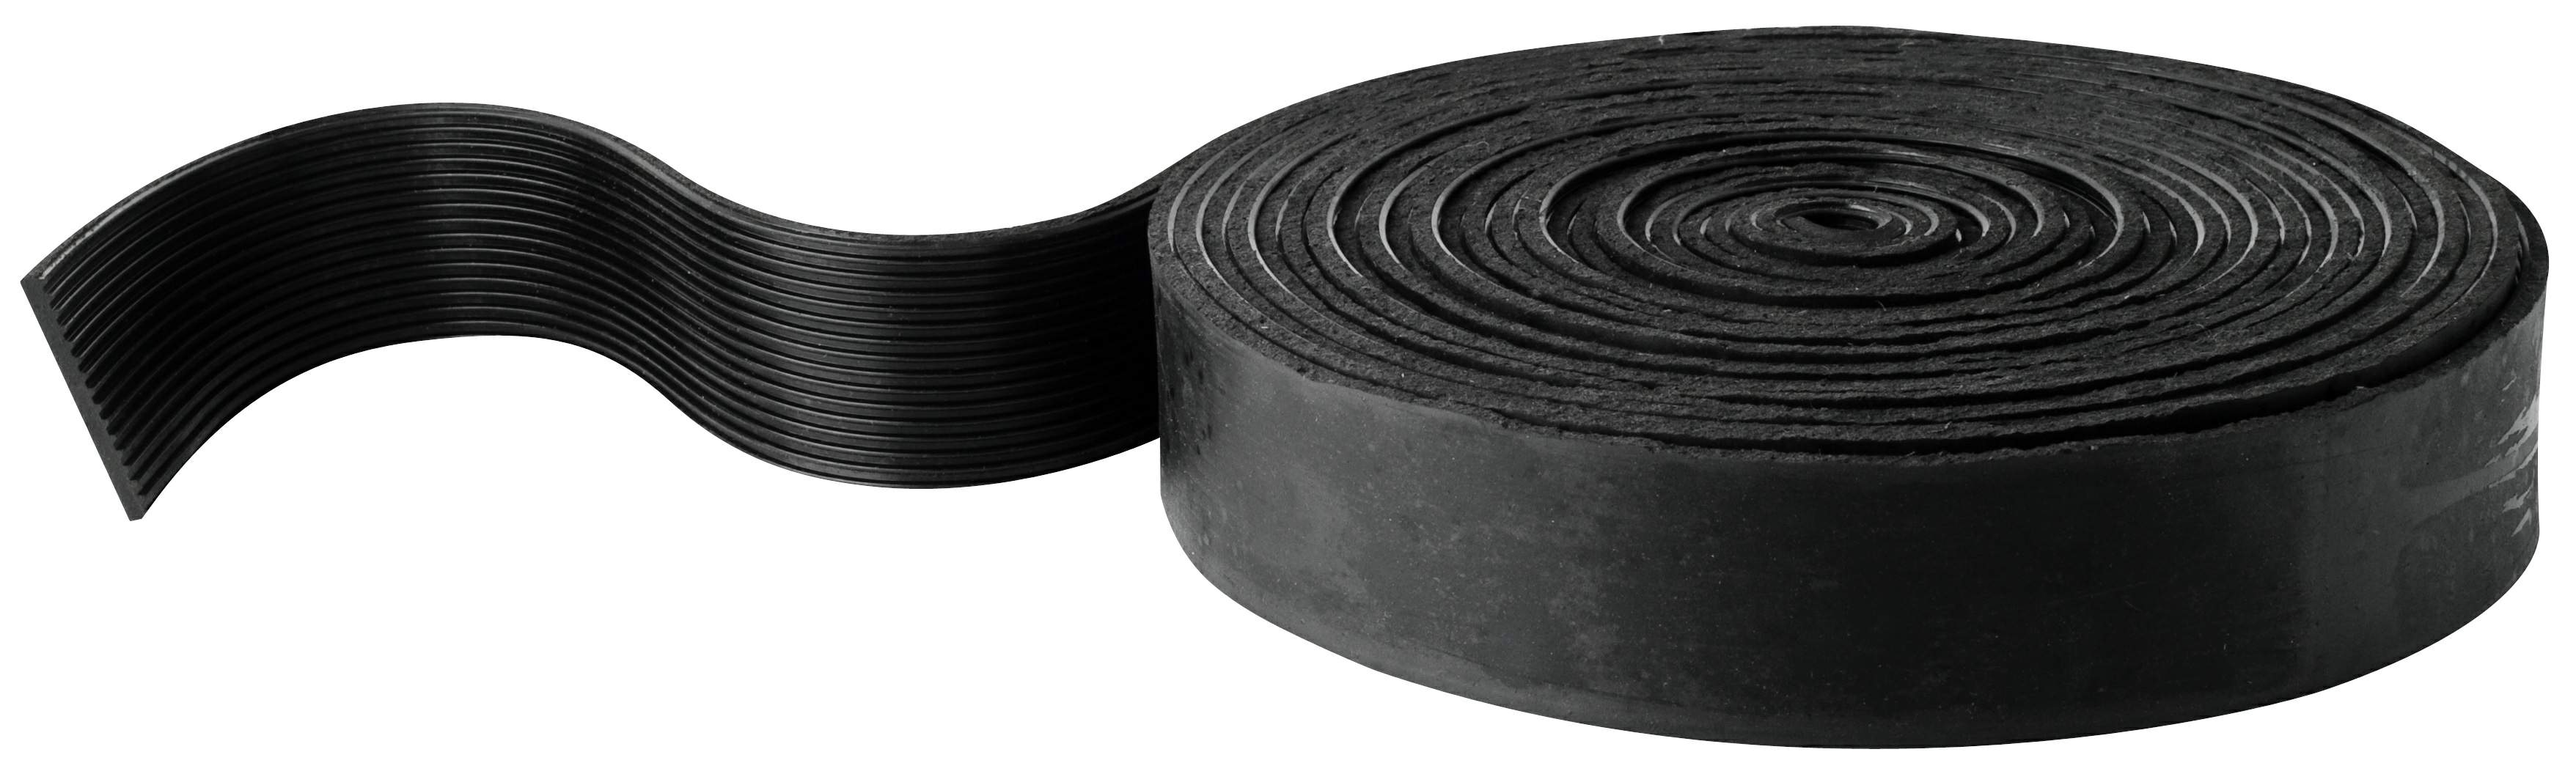 Thumbnail - Ribbed Rubber 10 Meter Roll (Glass Rack)